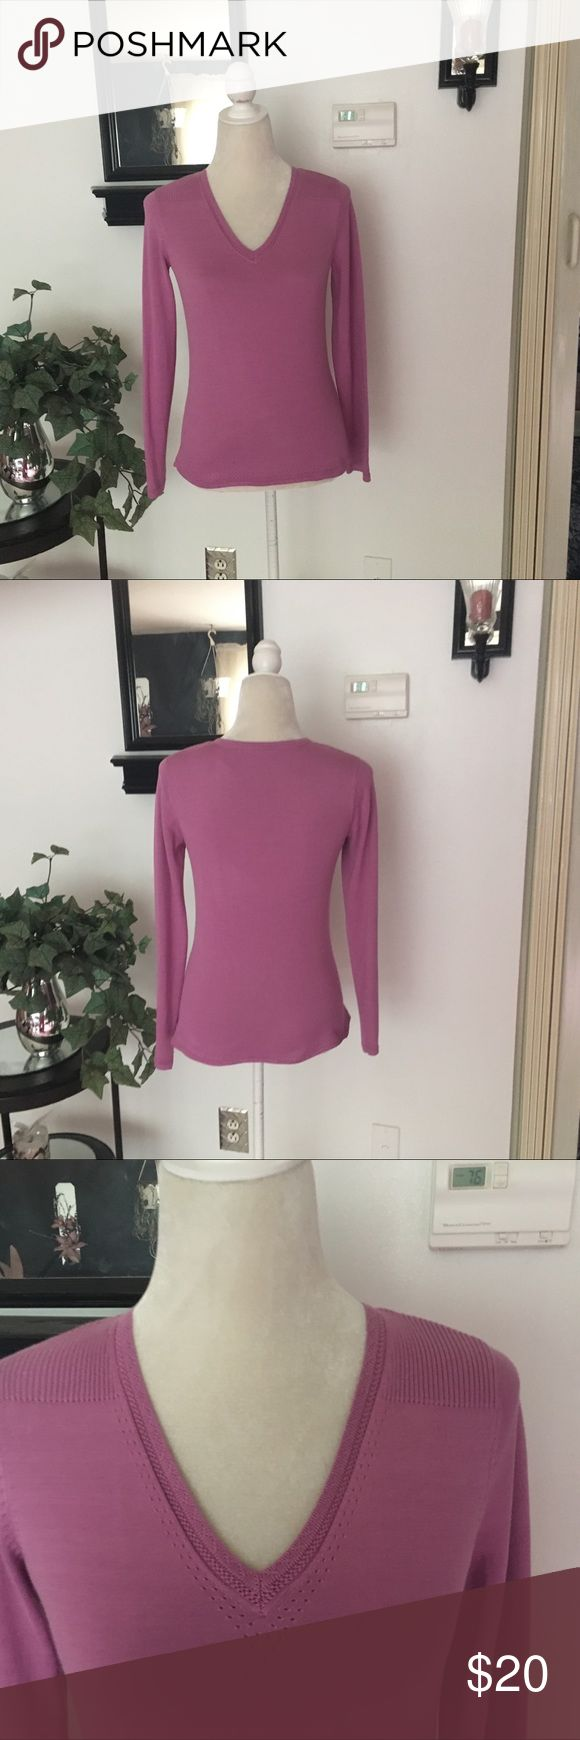 Liz Claiborne Purple Long Sleeve Top Liz Claiborne Light Purple (lilac?) Long Sleeve Top. This is thicker than a Top but not thick like a sweater. Gently worn. Size Small. Bust/chest (armpit to armpit) measures approx 17.5 un stretched. Length is approx 22 inches un stretched. Liz Claiborne Tops